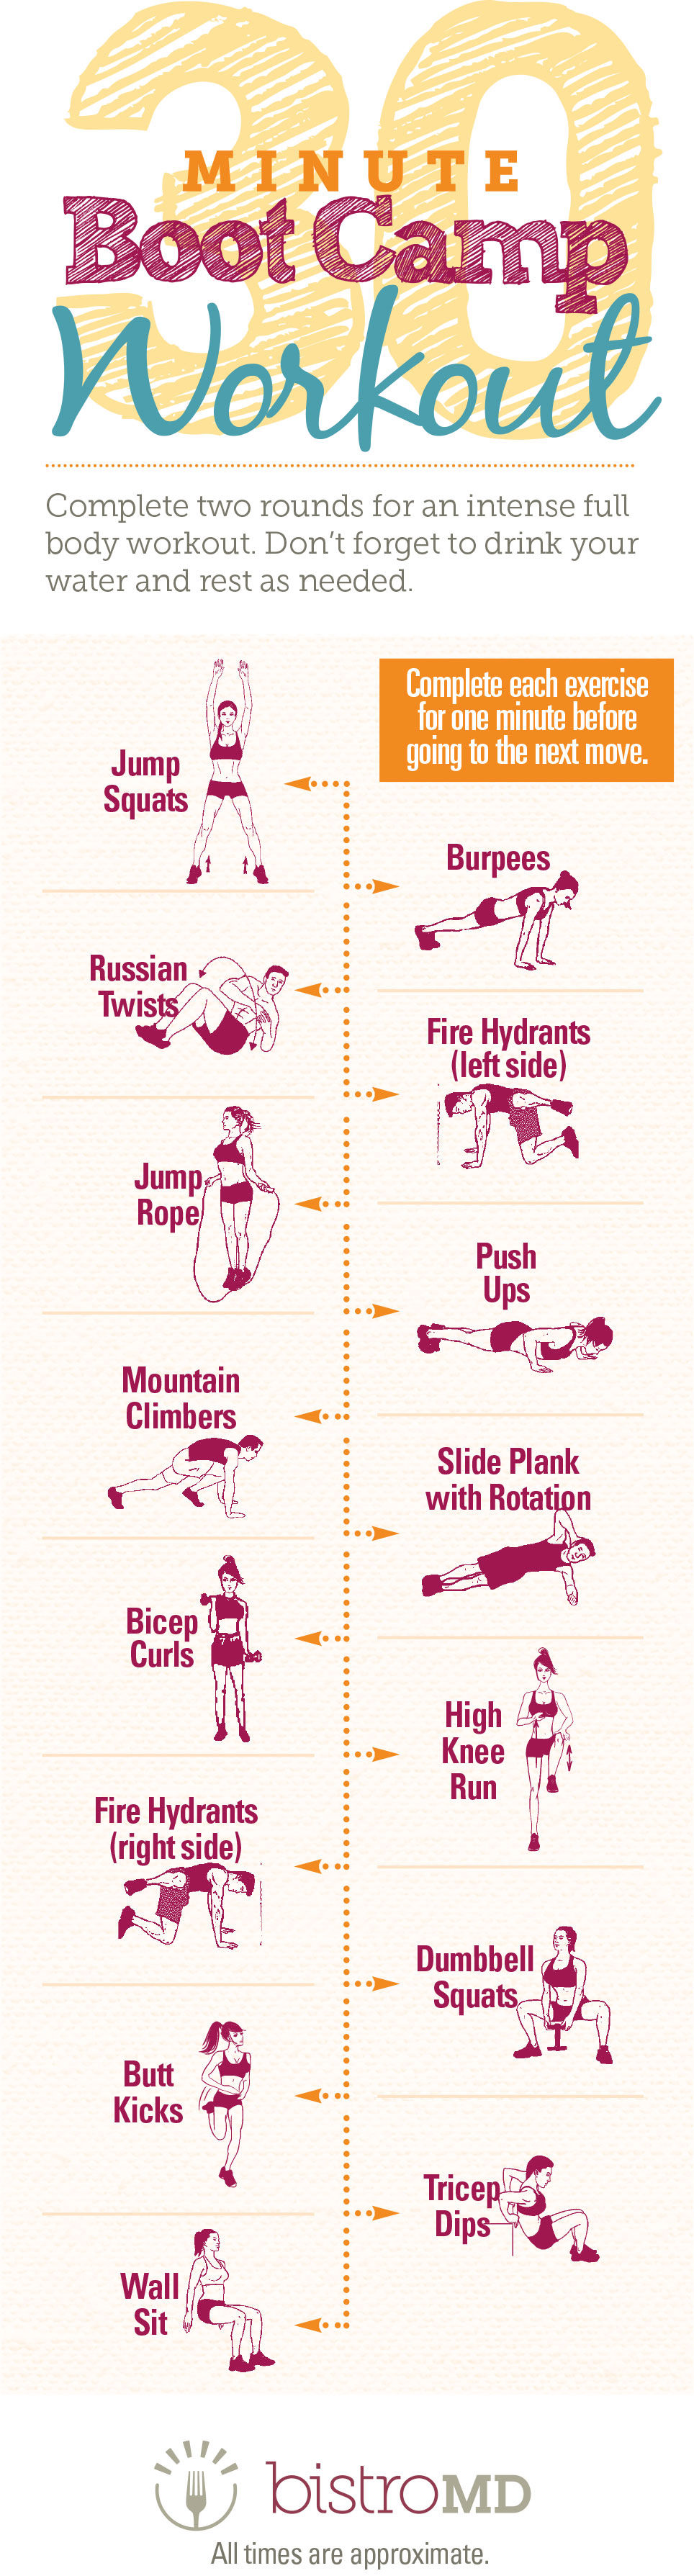 30 Minute Boot Camp Workout Pictures  Photos  And Images